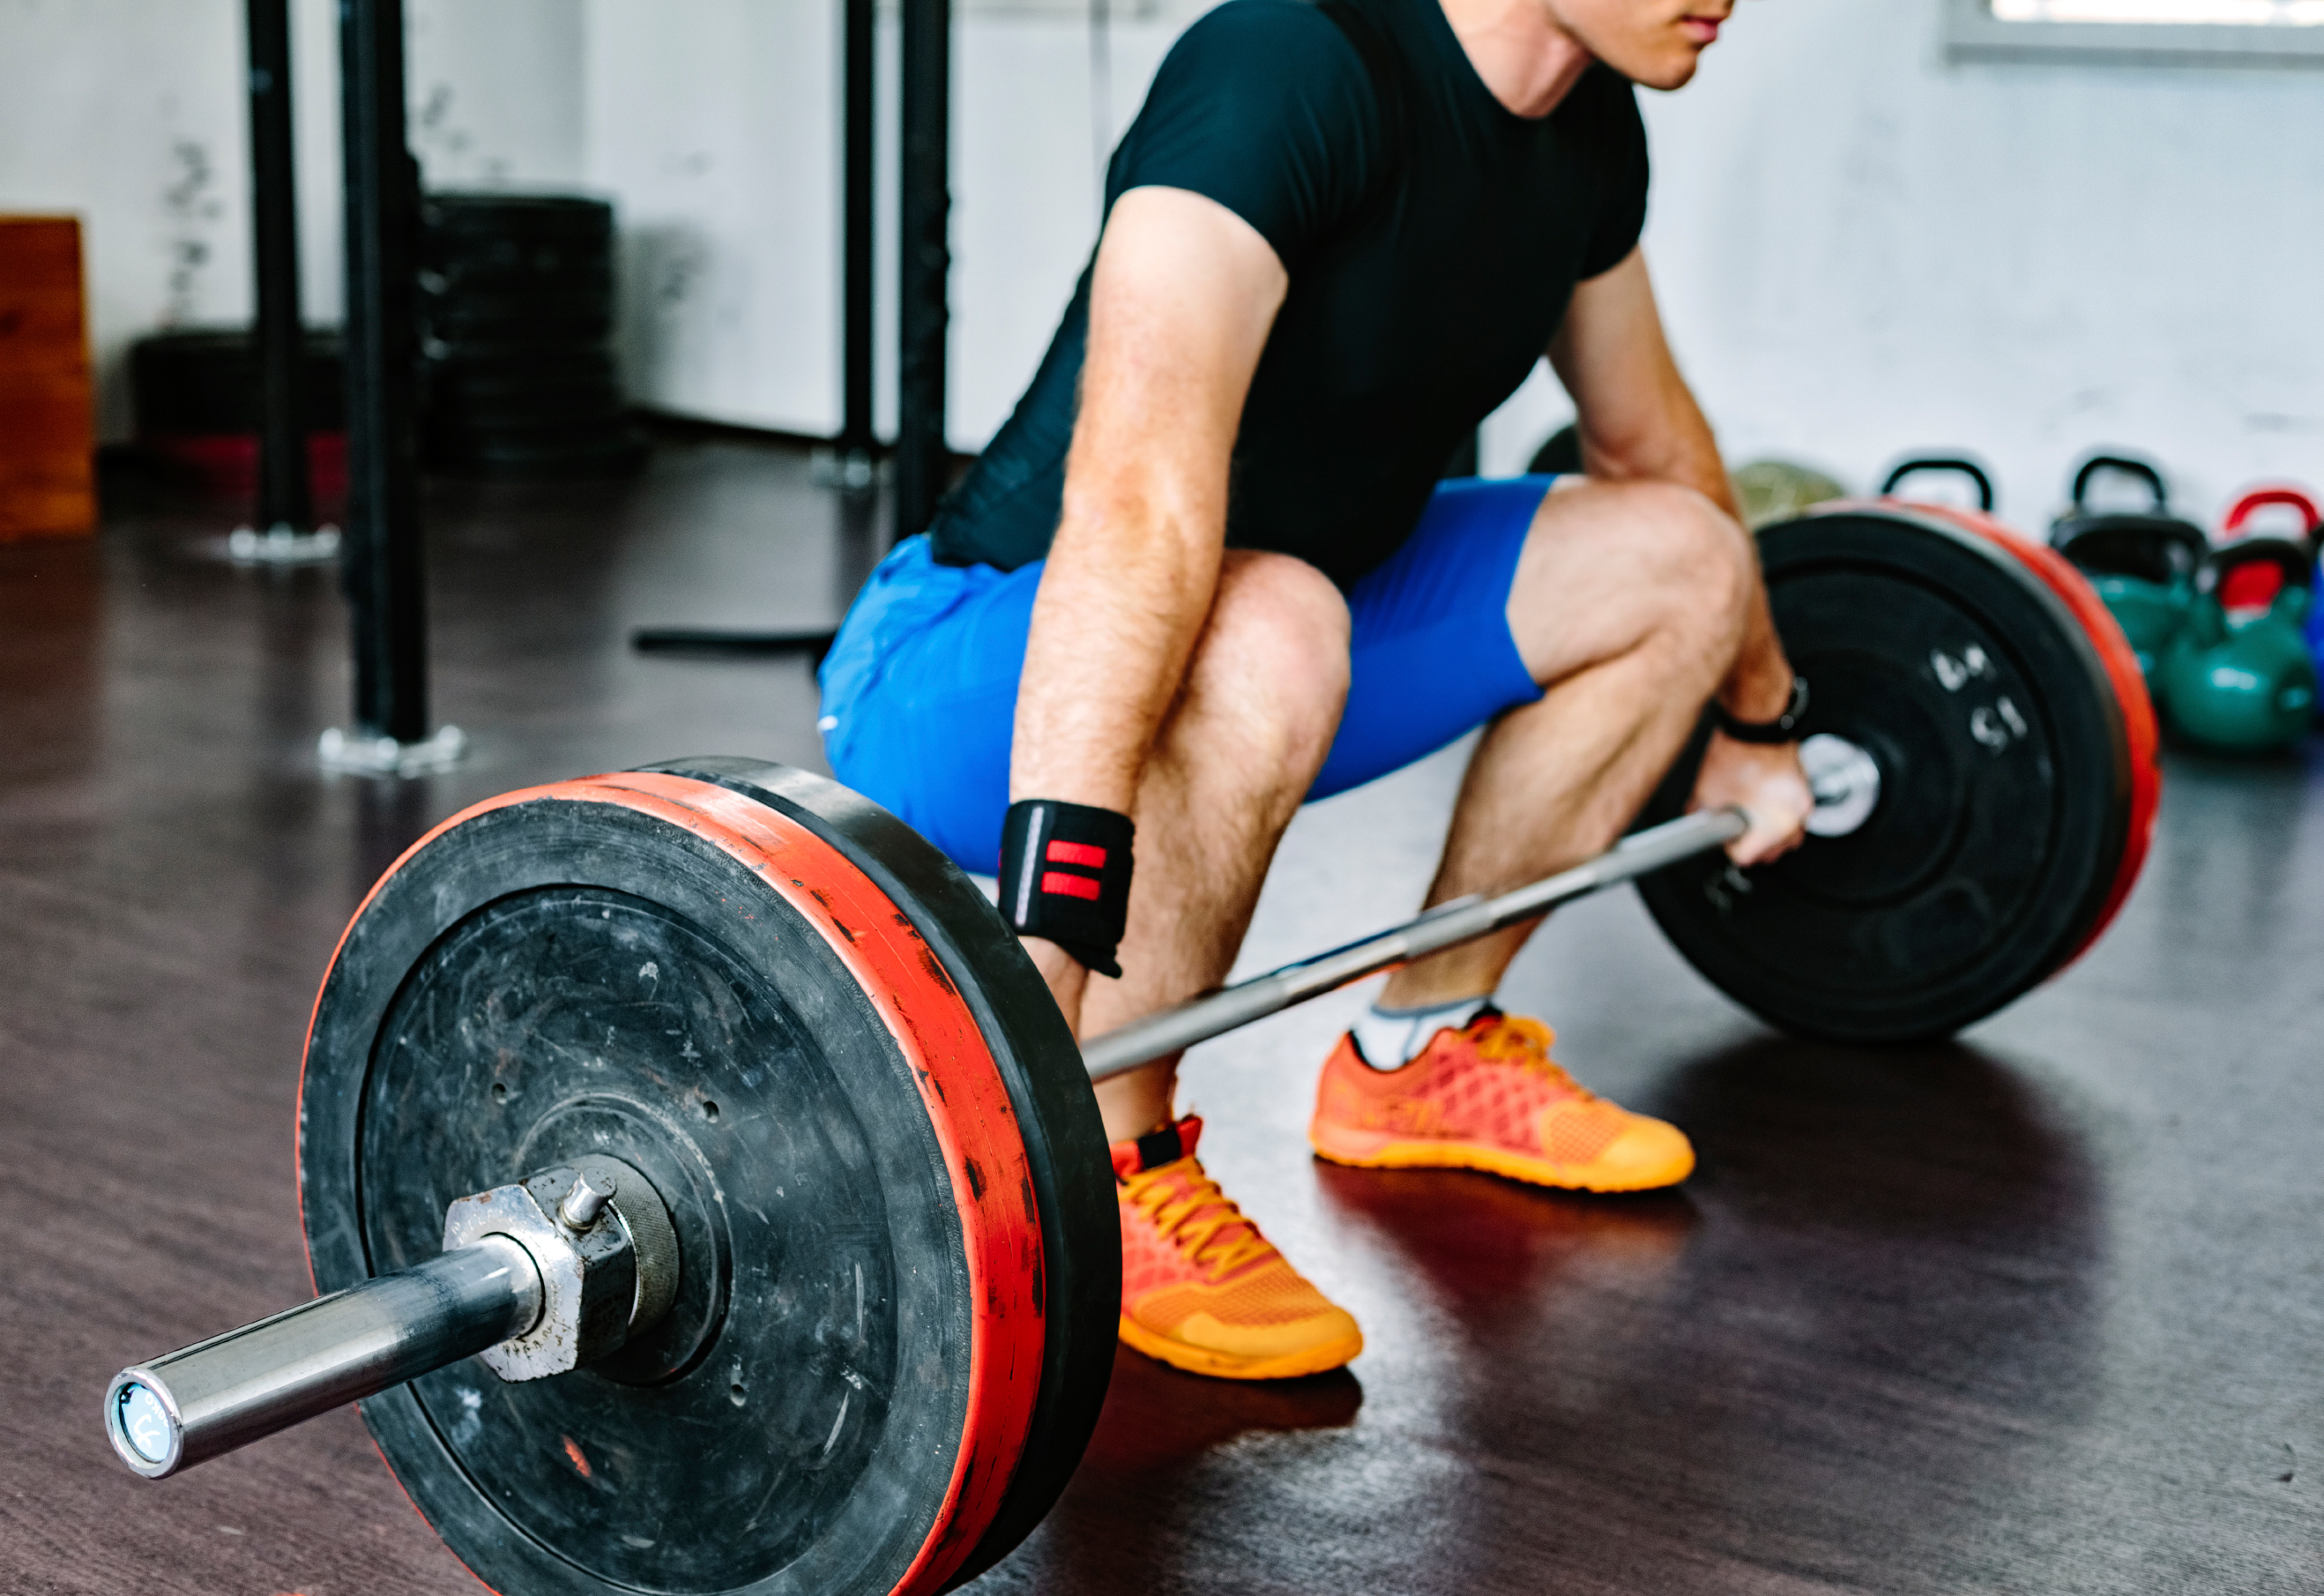 Weight Lifting: The Minimum Amount You Can Strength Train and See ...